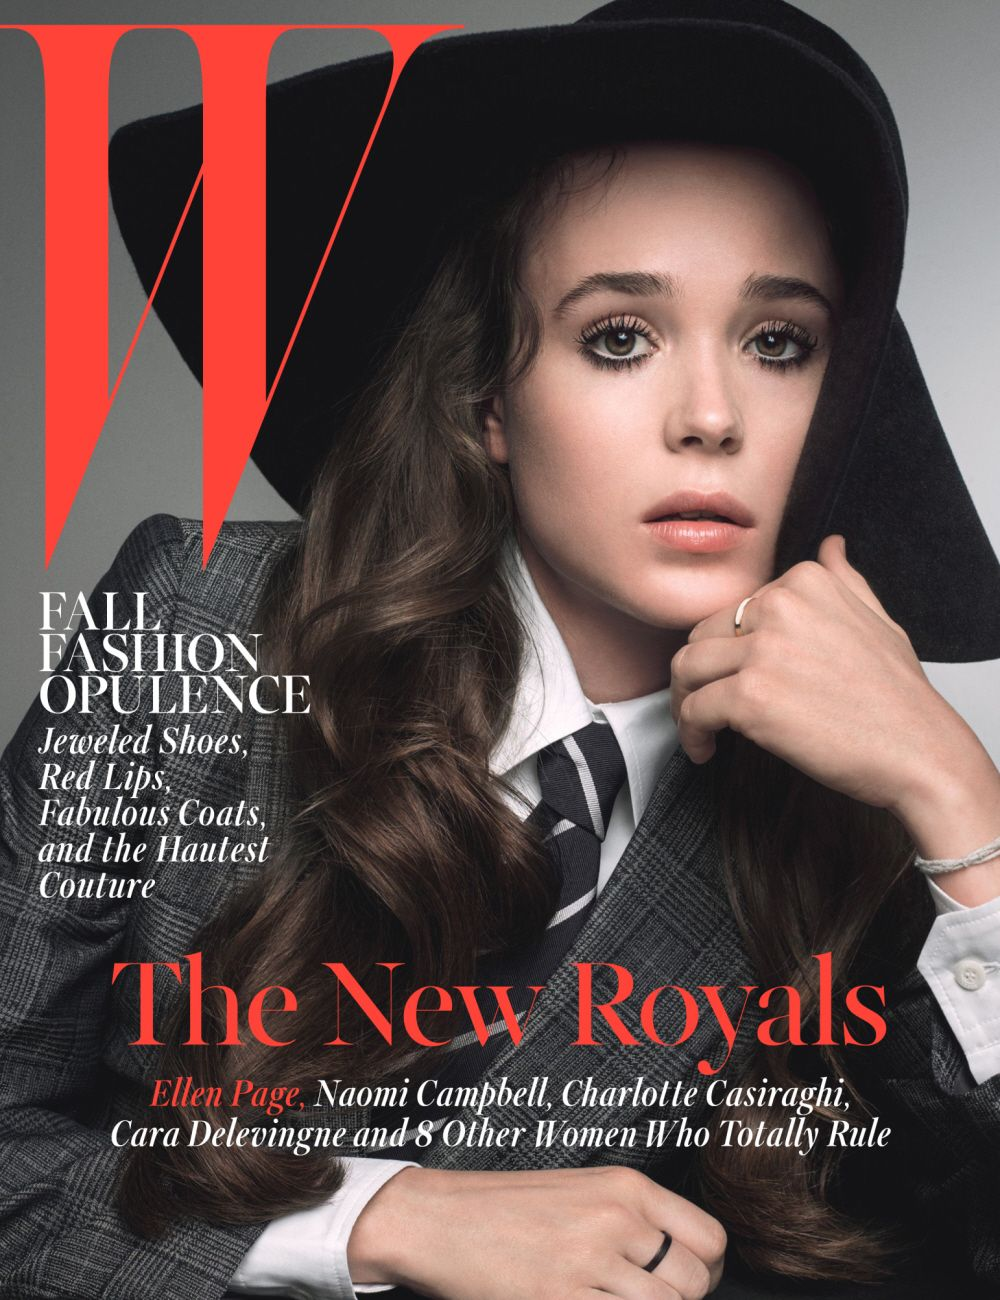 W Magazine has five completely random covers: which is your favorite?